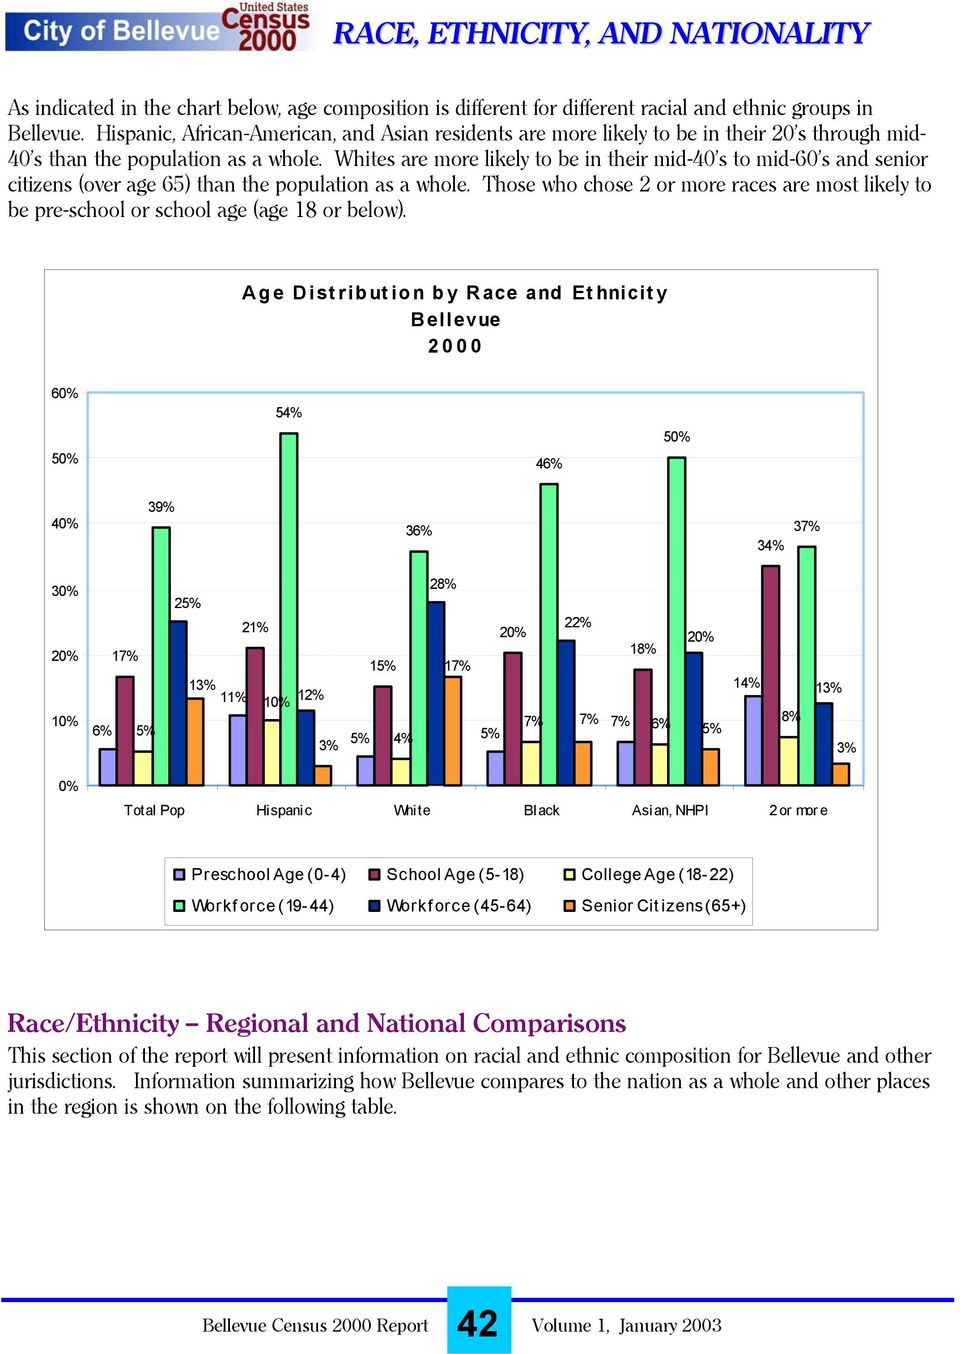 Whites are more likely to be in their mid-40 s to mid-60 s and senior citizens (over age 65) than the population as a whole.